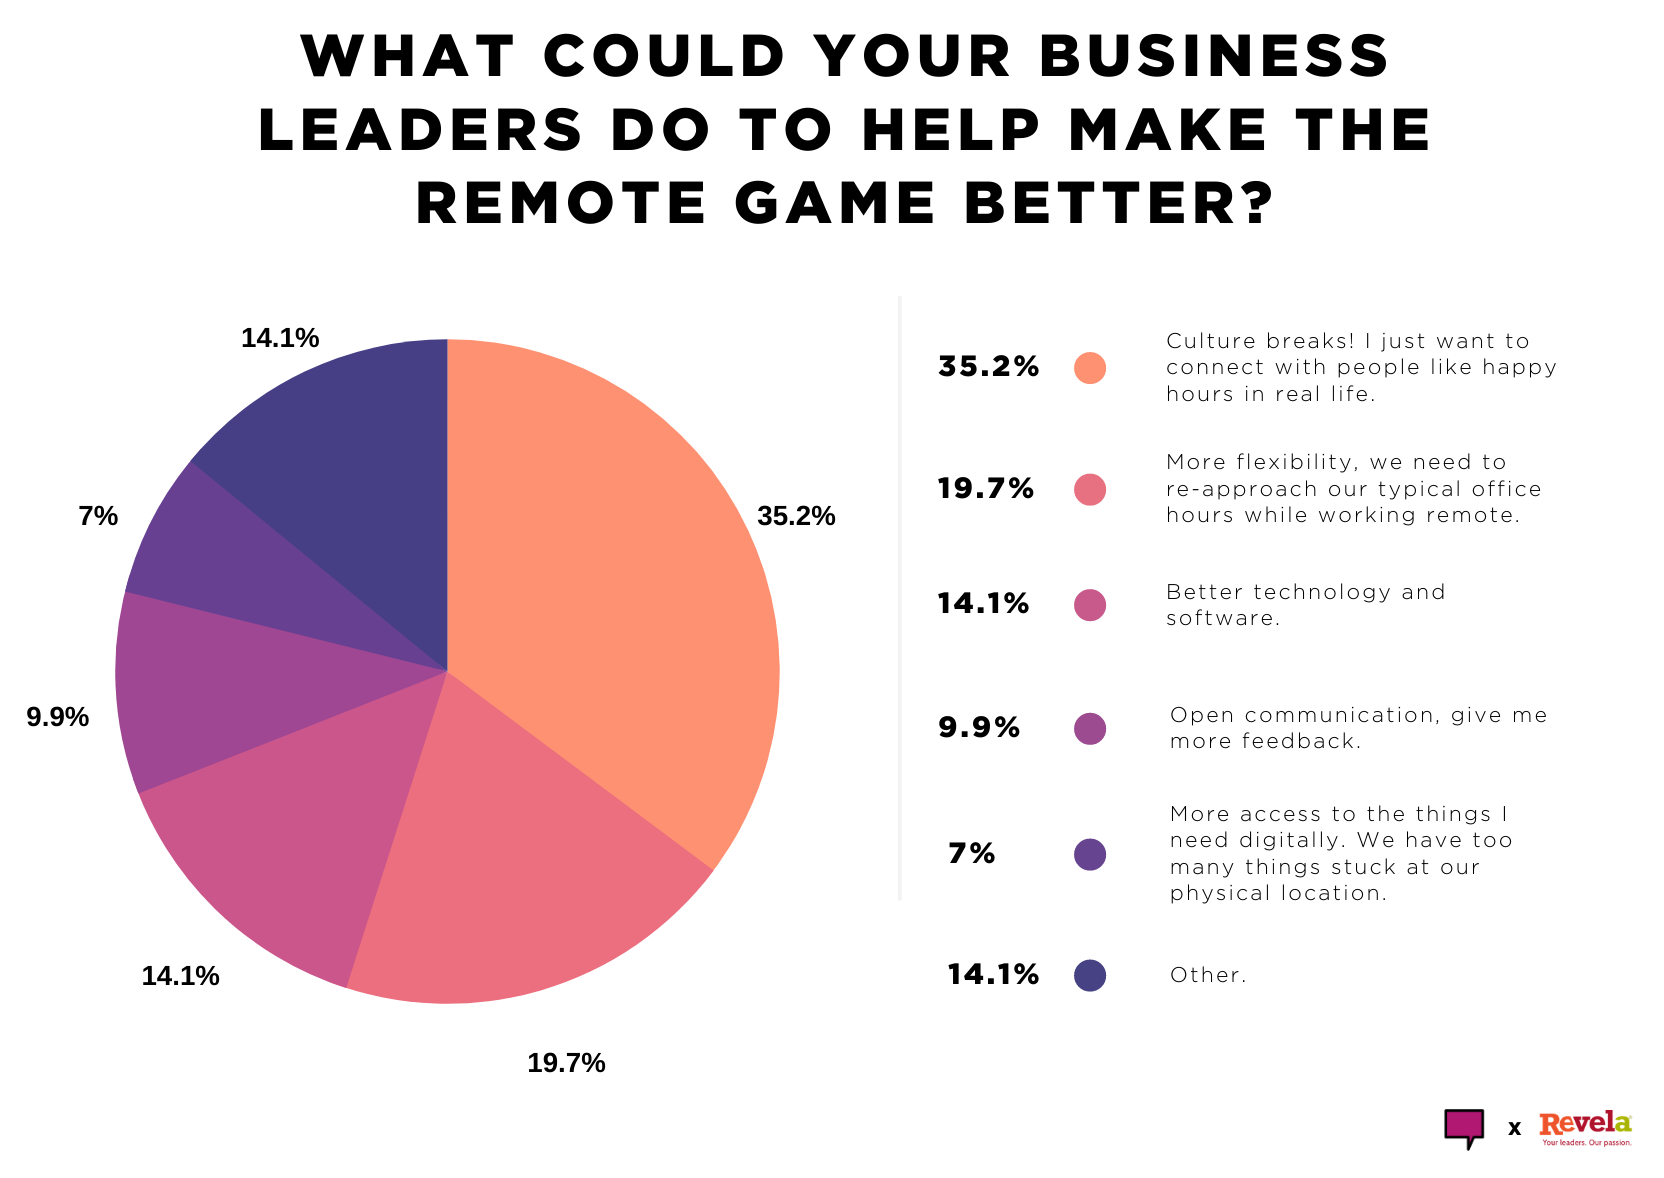 What could your business leaders do to help make the remote game better?